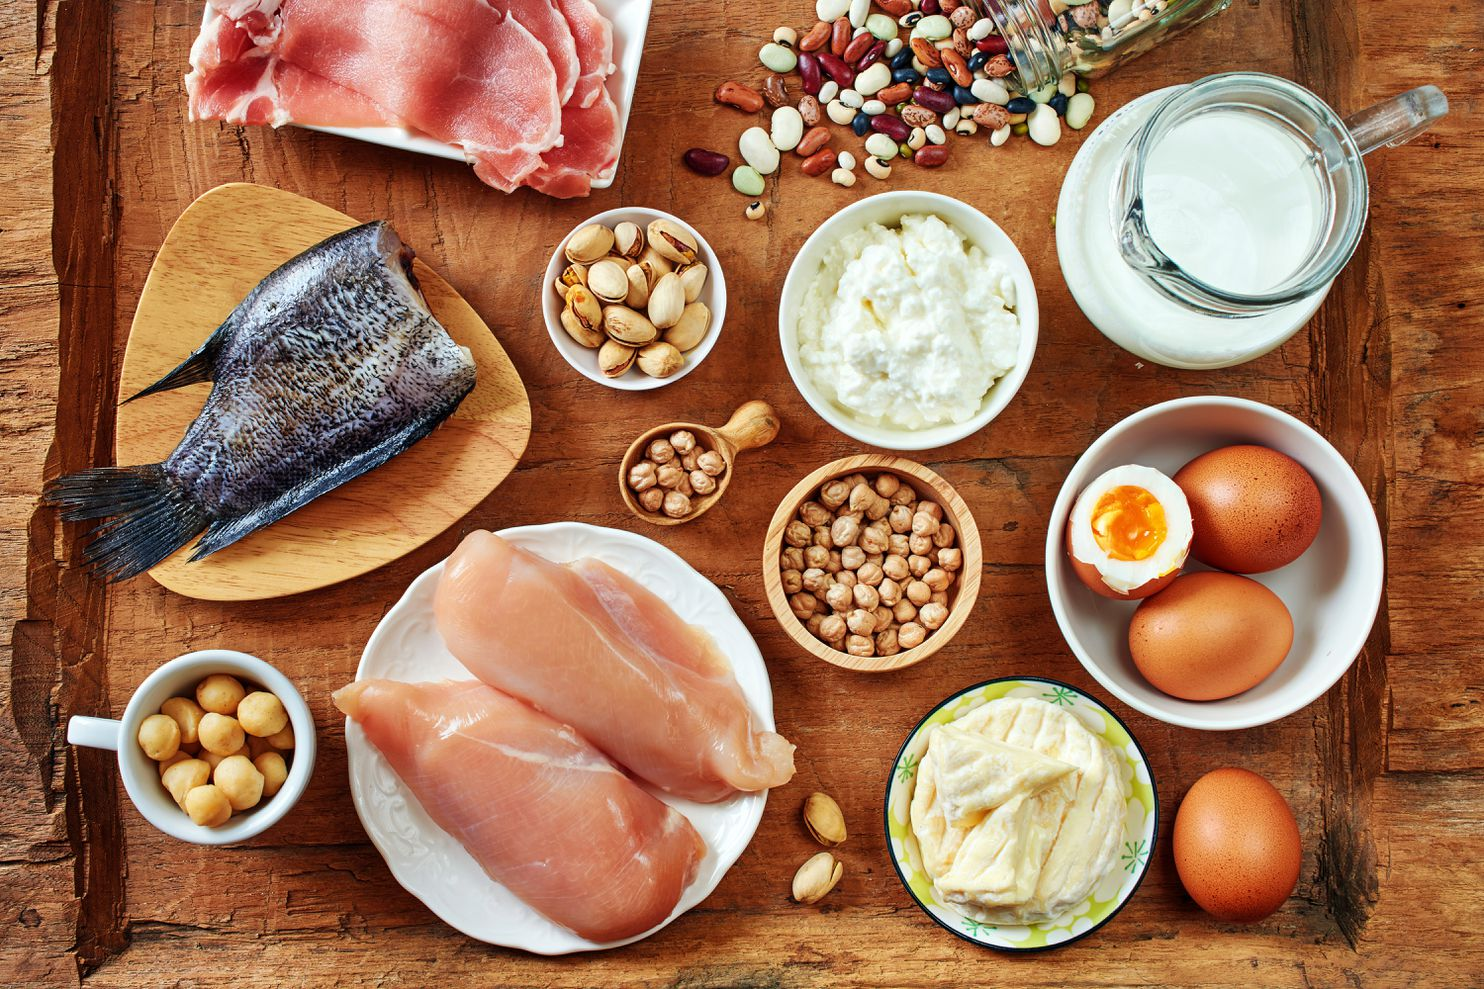 A wooden table with protein-rich foods including eggs, chicken, milk, nuts, beans, and fish